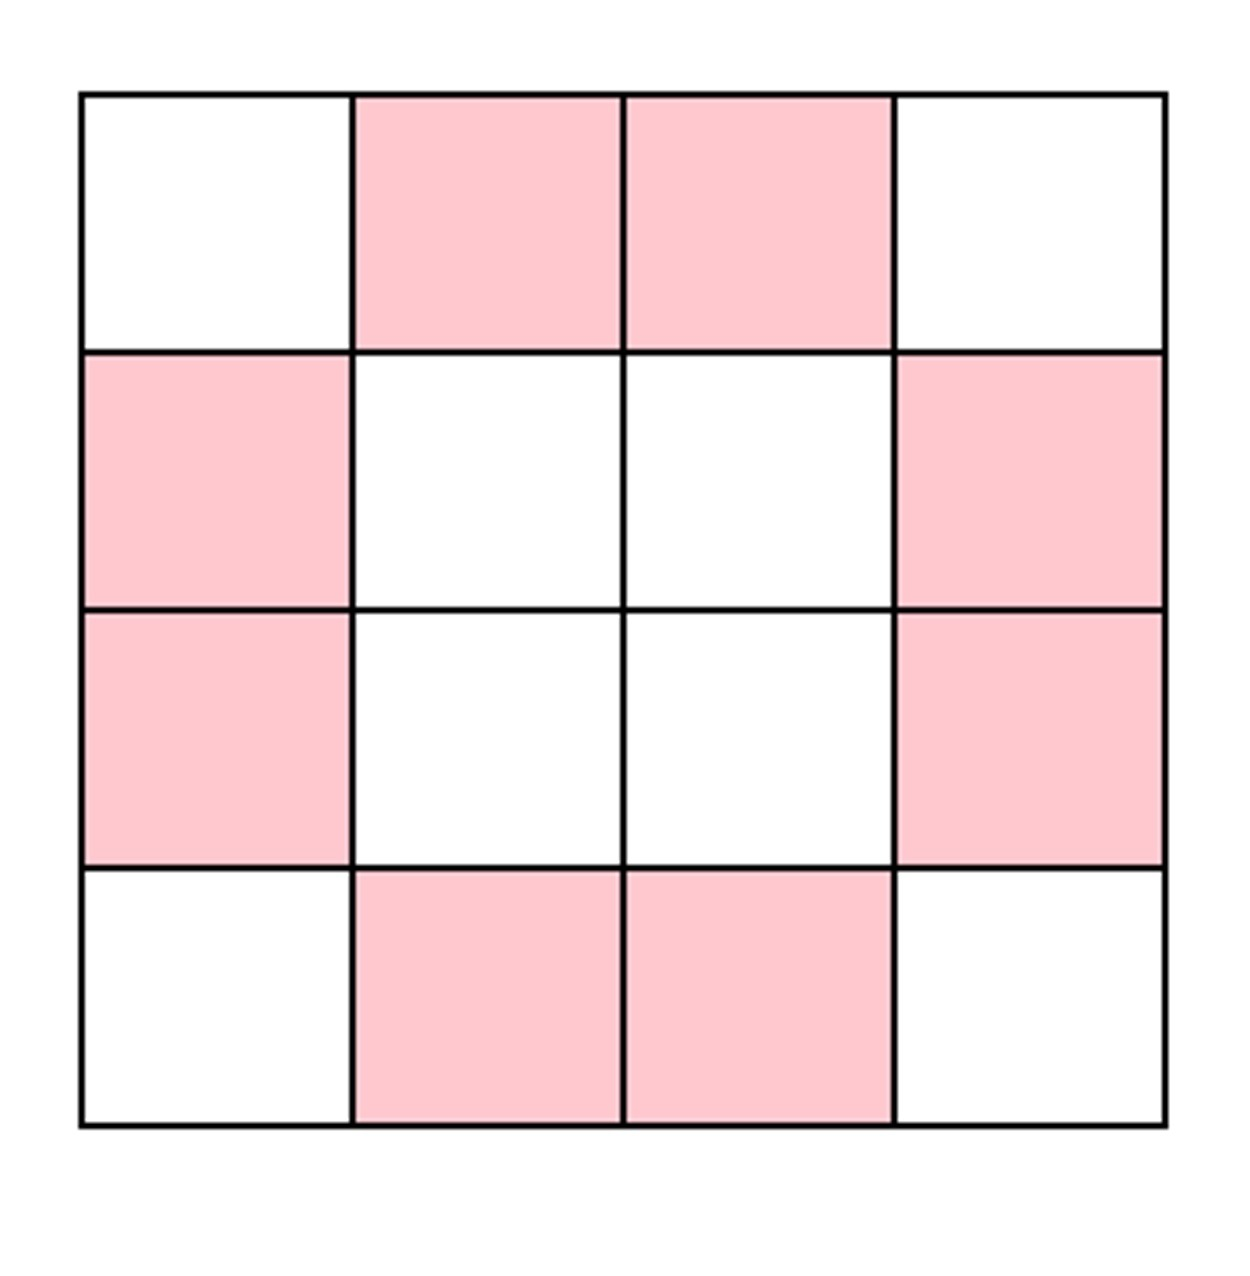 Constructing Magic Square With Order 4